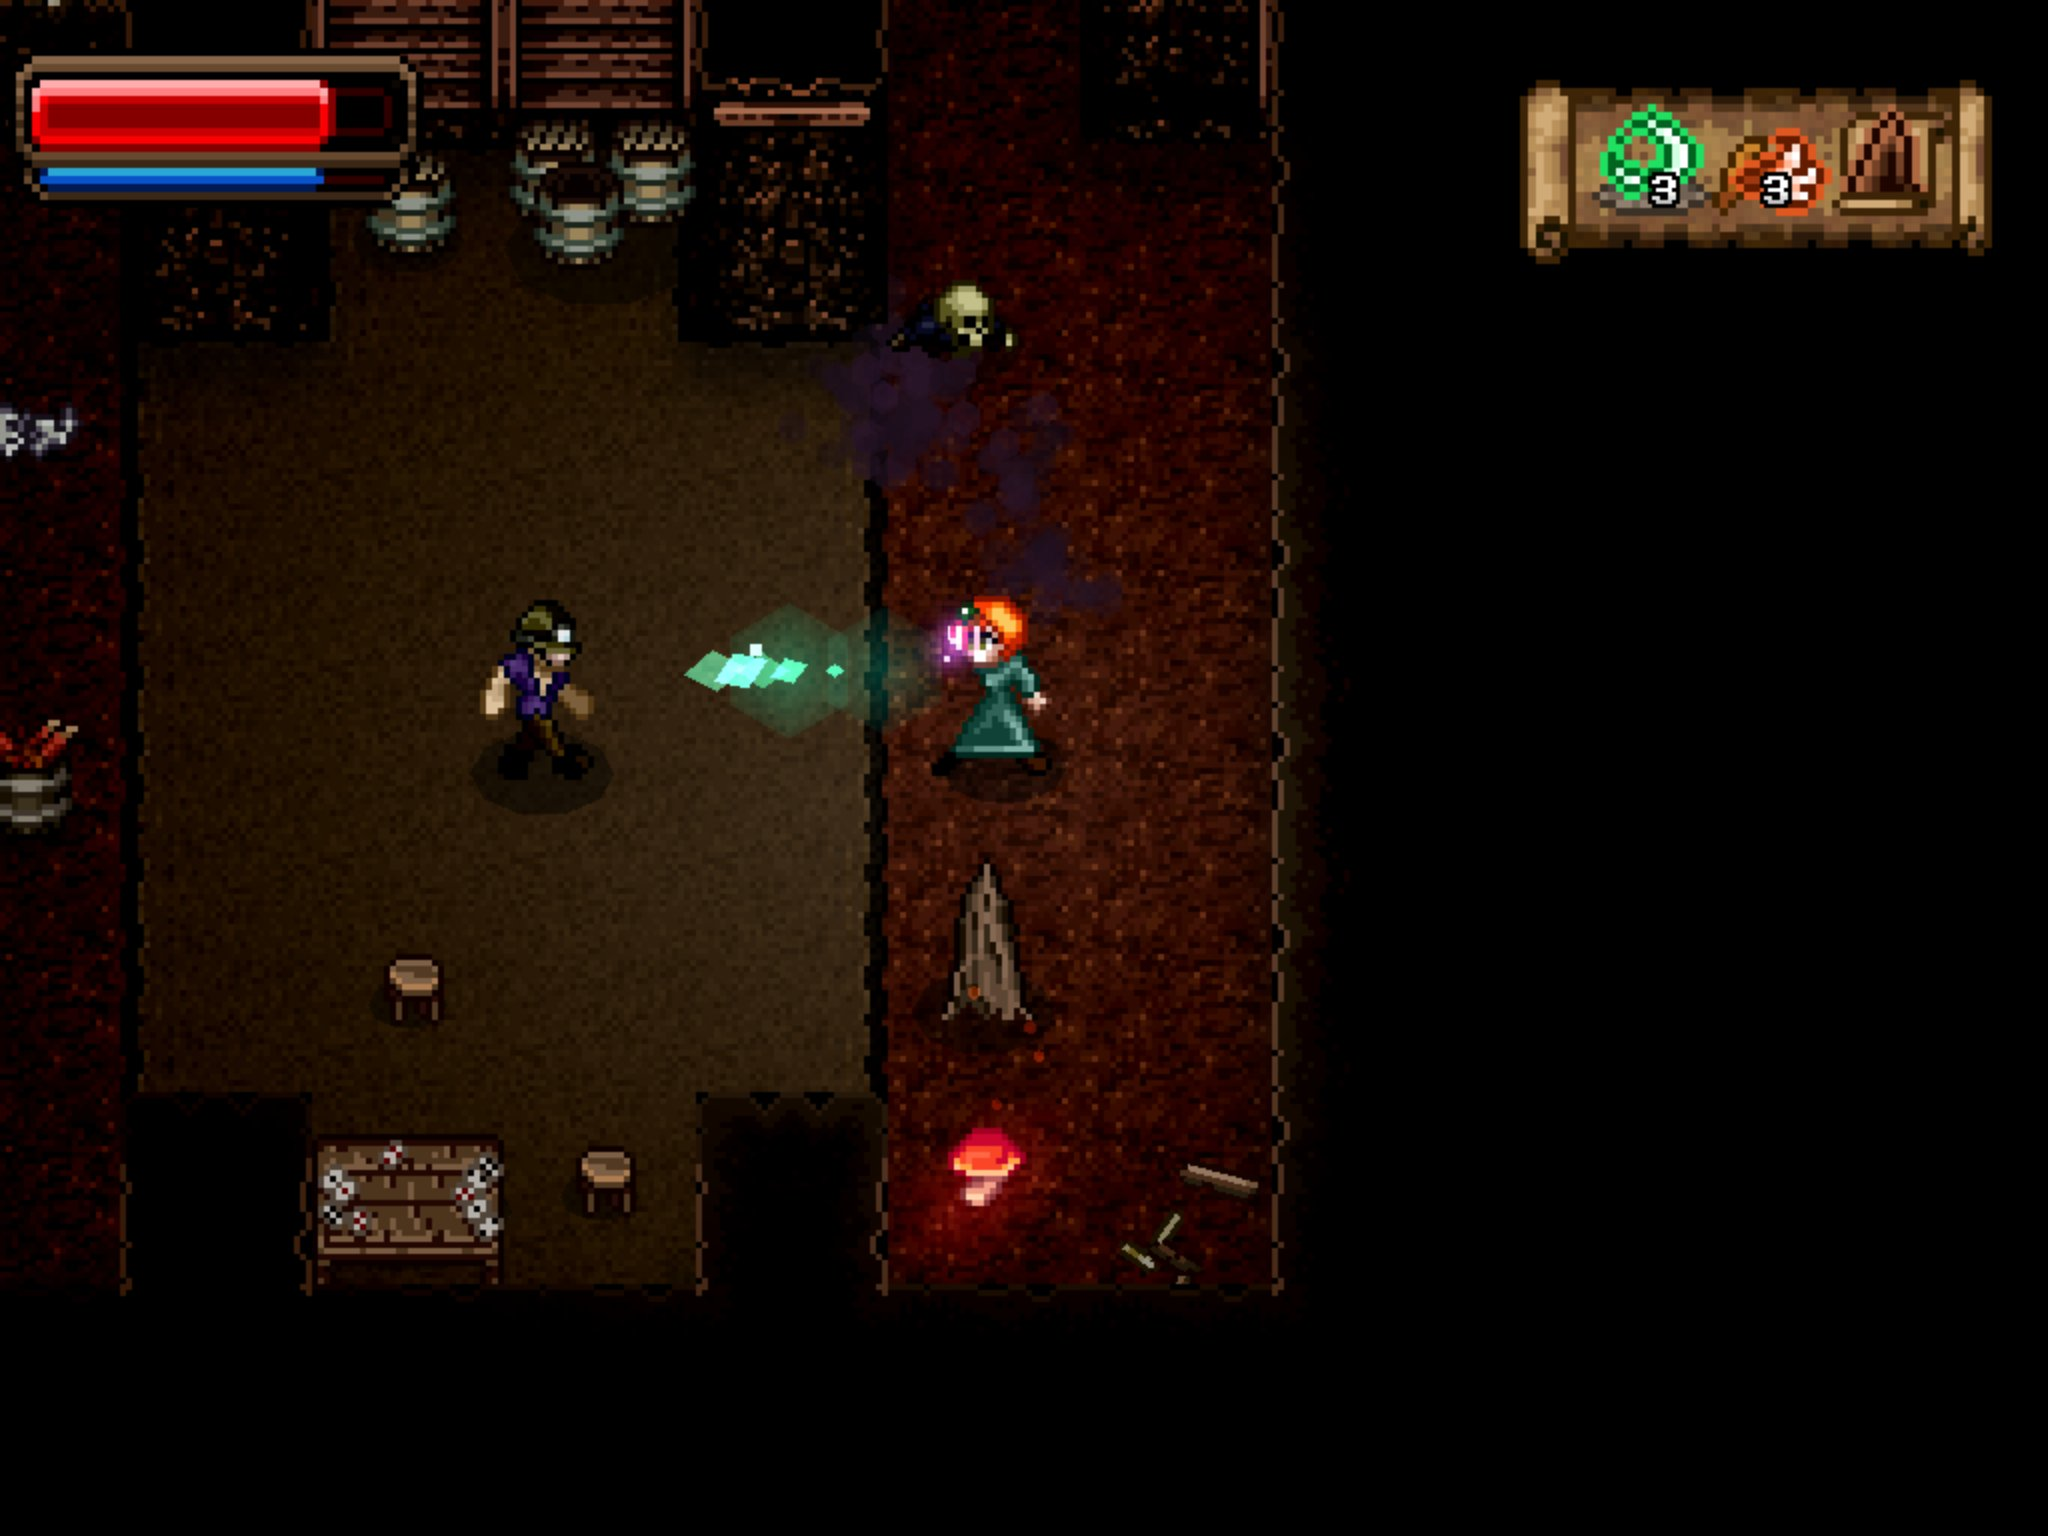 Wayward Souls, the Platinum Award-winning dungeon-crawling roguelike, has finally been released on Android